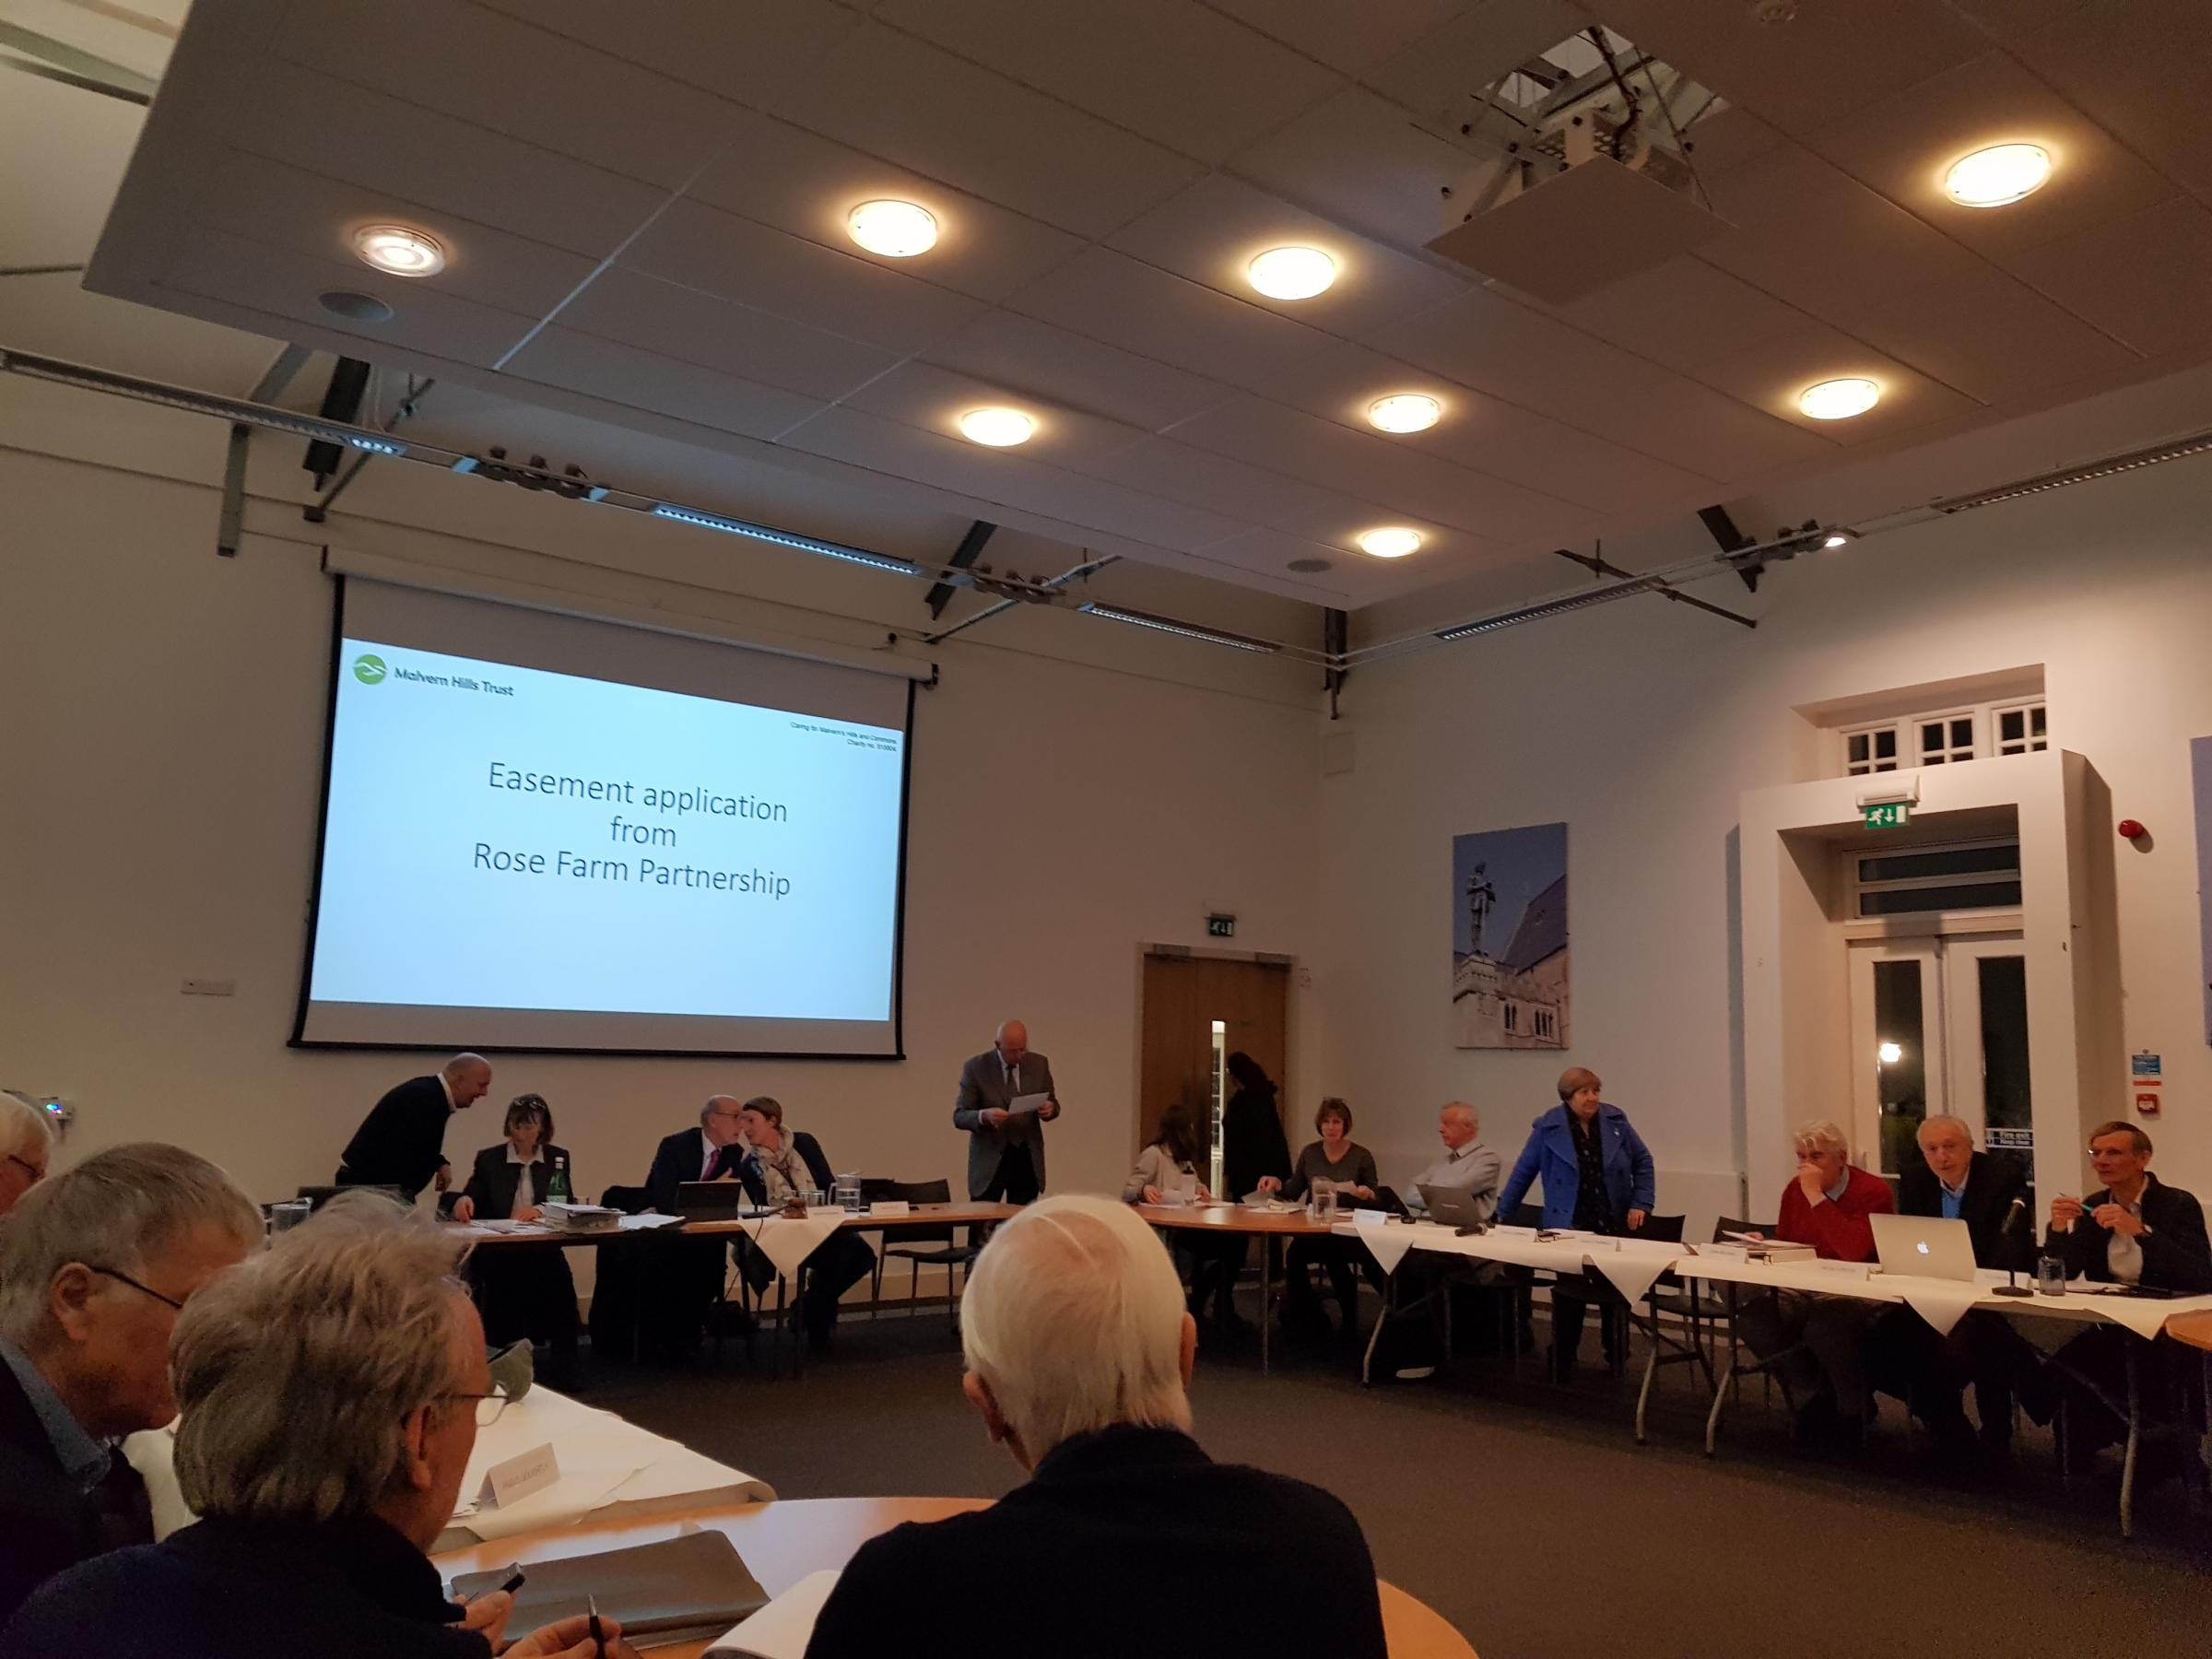 MEETING: The plan was rejected at a special meeting of Malvern Hills Trust